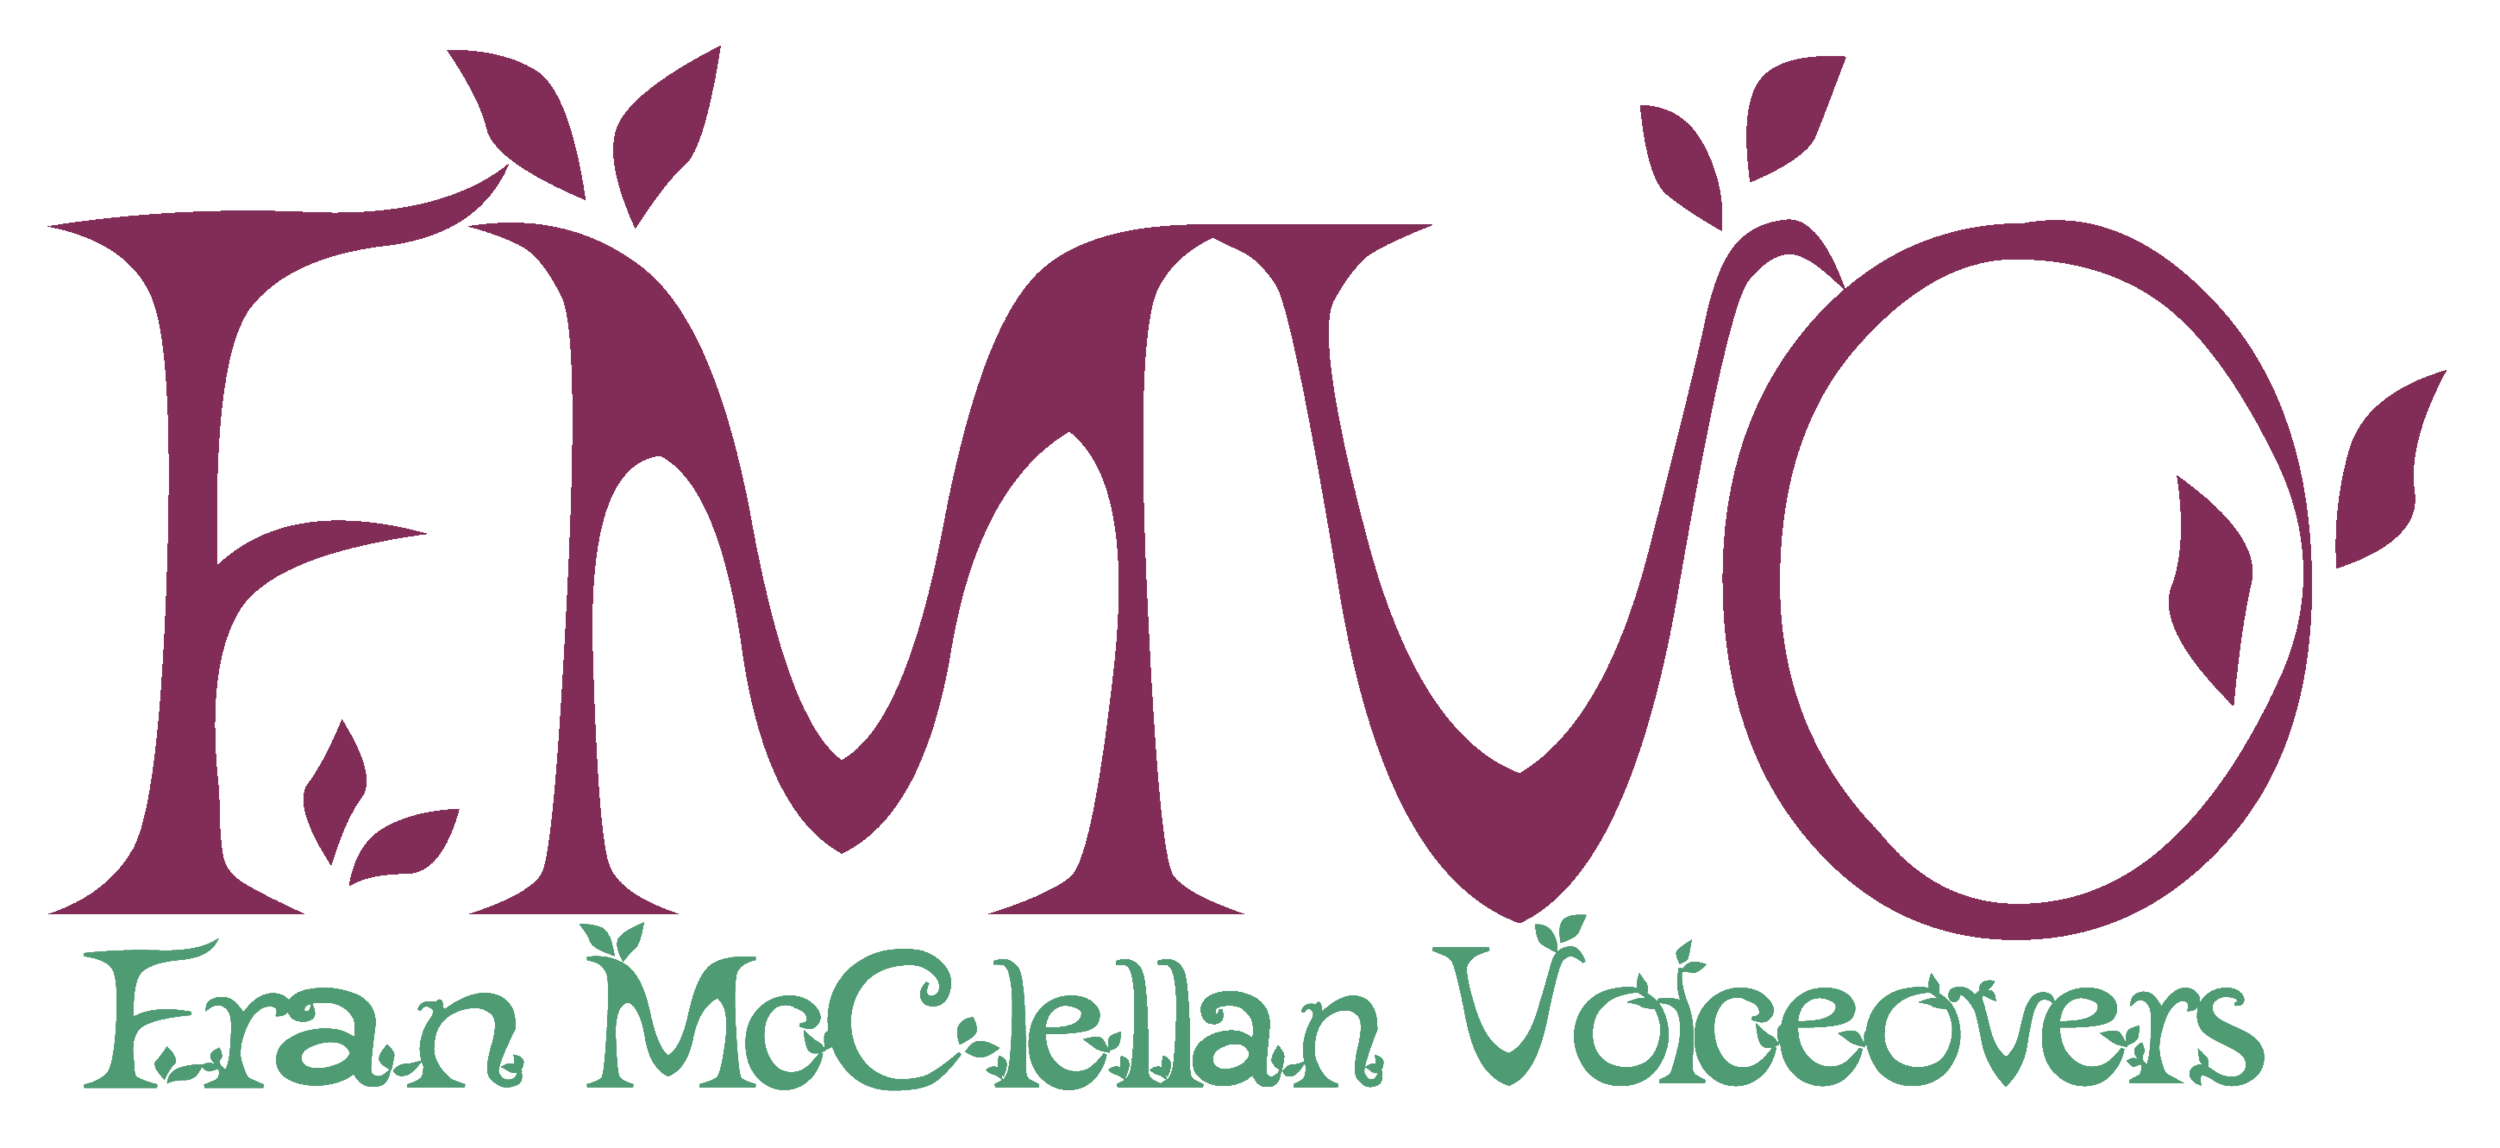 female voiceover talent for commercials, radio imaging, network promos, web videos. commercial voice over talent. tv promo voiceover talent. radio imaging voiceover. vo talent. co-branded content voiceover